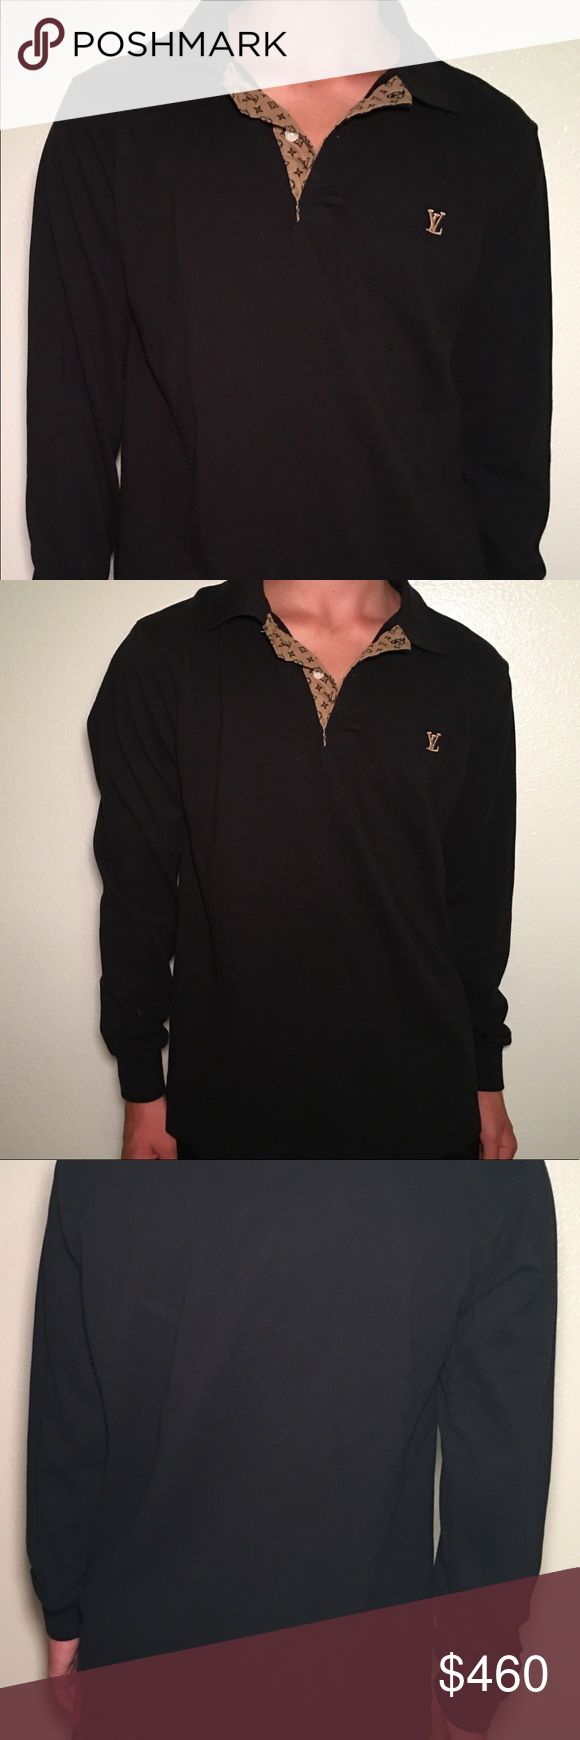 🇮🇹NWOT LOUIS VUITTON LONG SLEEVES POLO NWOT 💯% AUTHENTIC LOUIS VUITTON LONG SLEEVES POLO   A casual piece with a sophisticated twist, this long-sleeved polo shirt is crafted from 💯% cotton. Made in Italy 🇮🇹 Louis Vuitton Shirts Polos